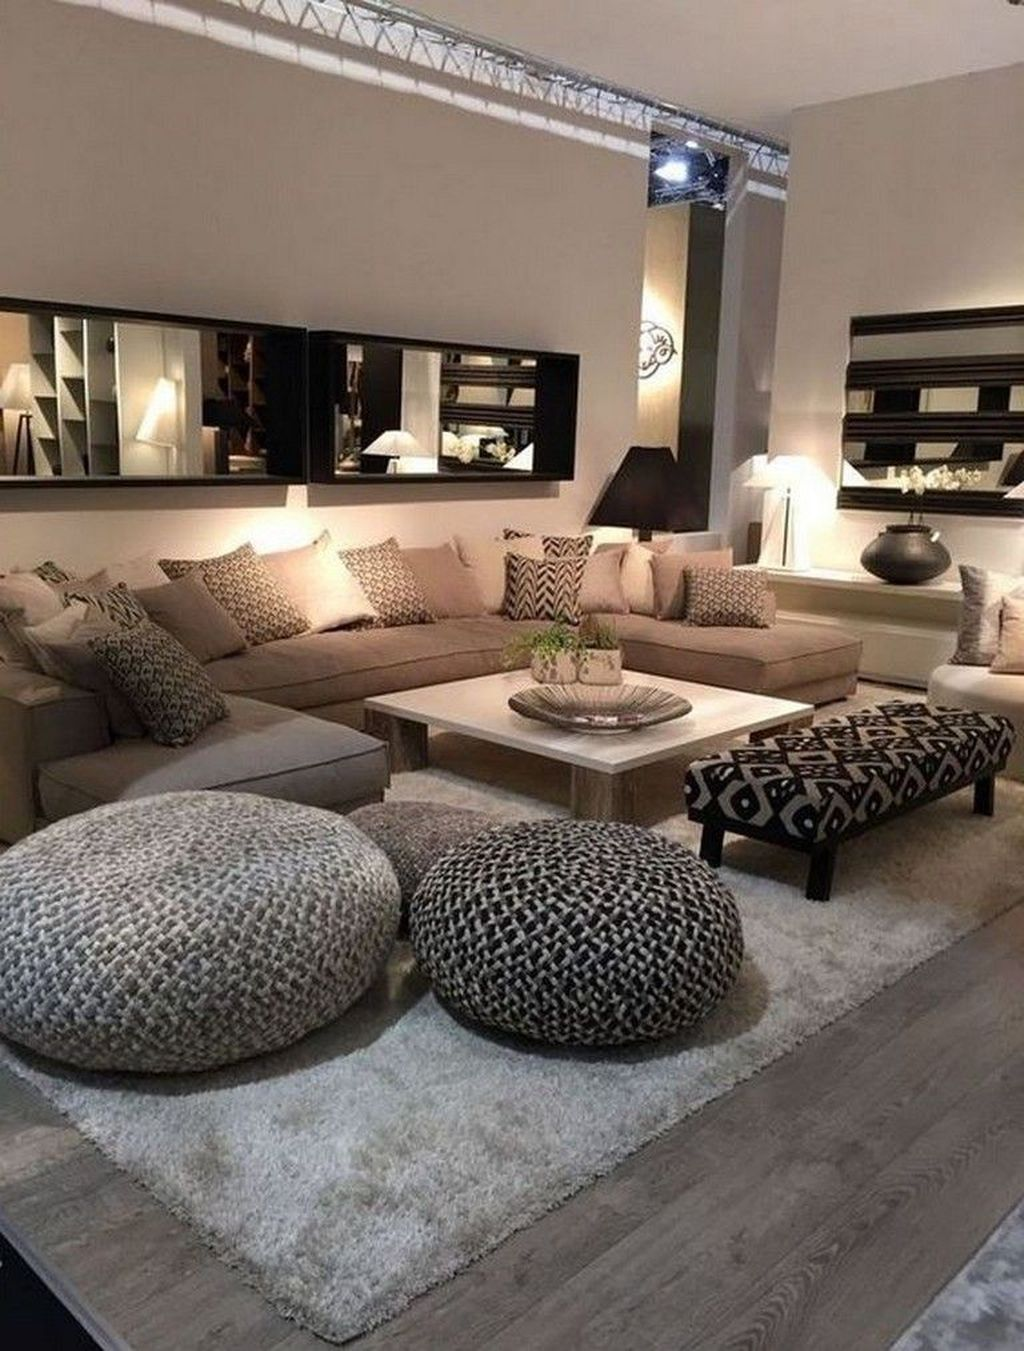 44 Classy Living Room Ideas For Your Home Nowaday Comfy Living Room Elegant Living Room Luxury Living Room